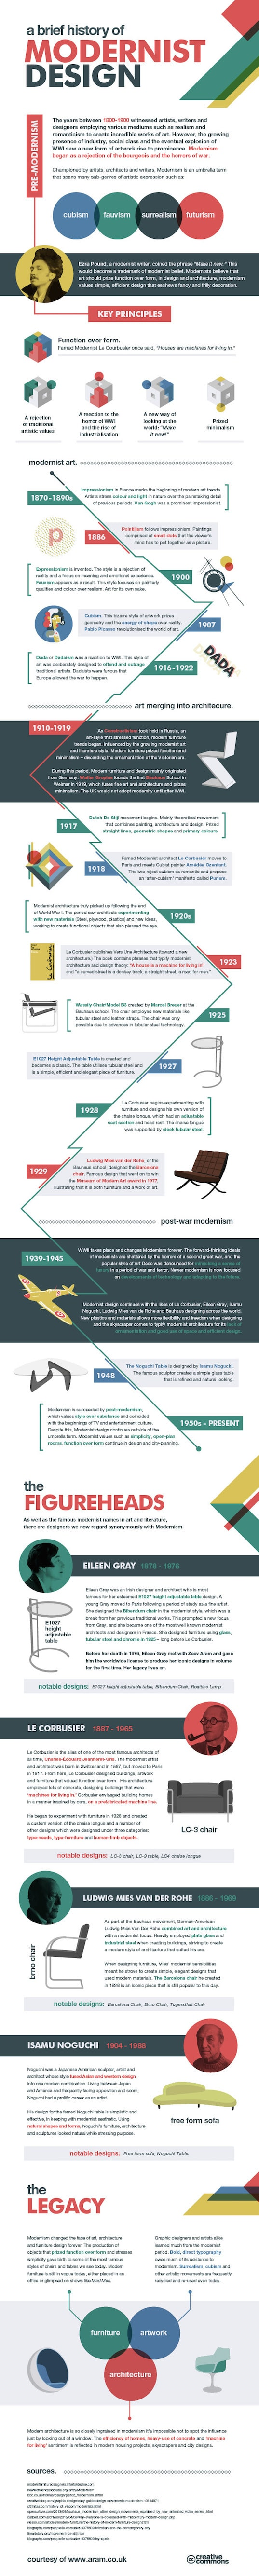 History behind Modernist design